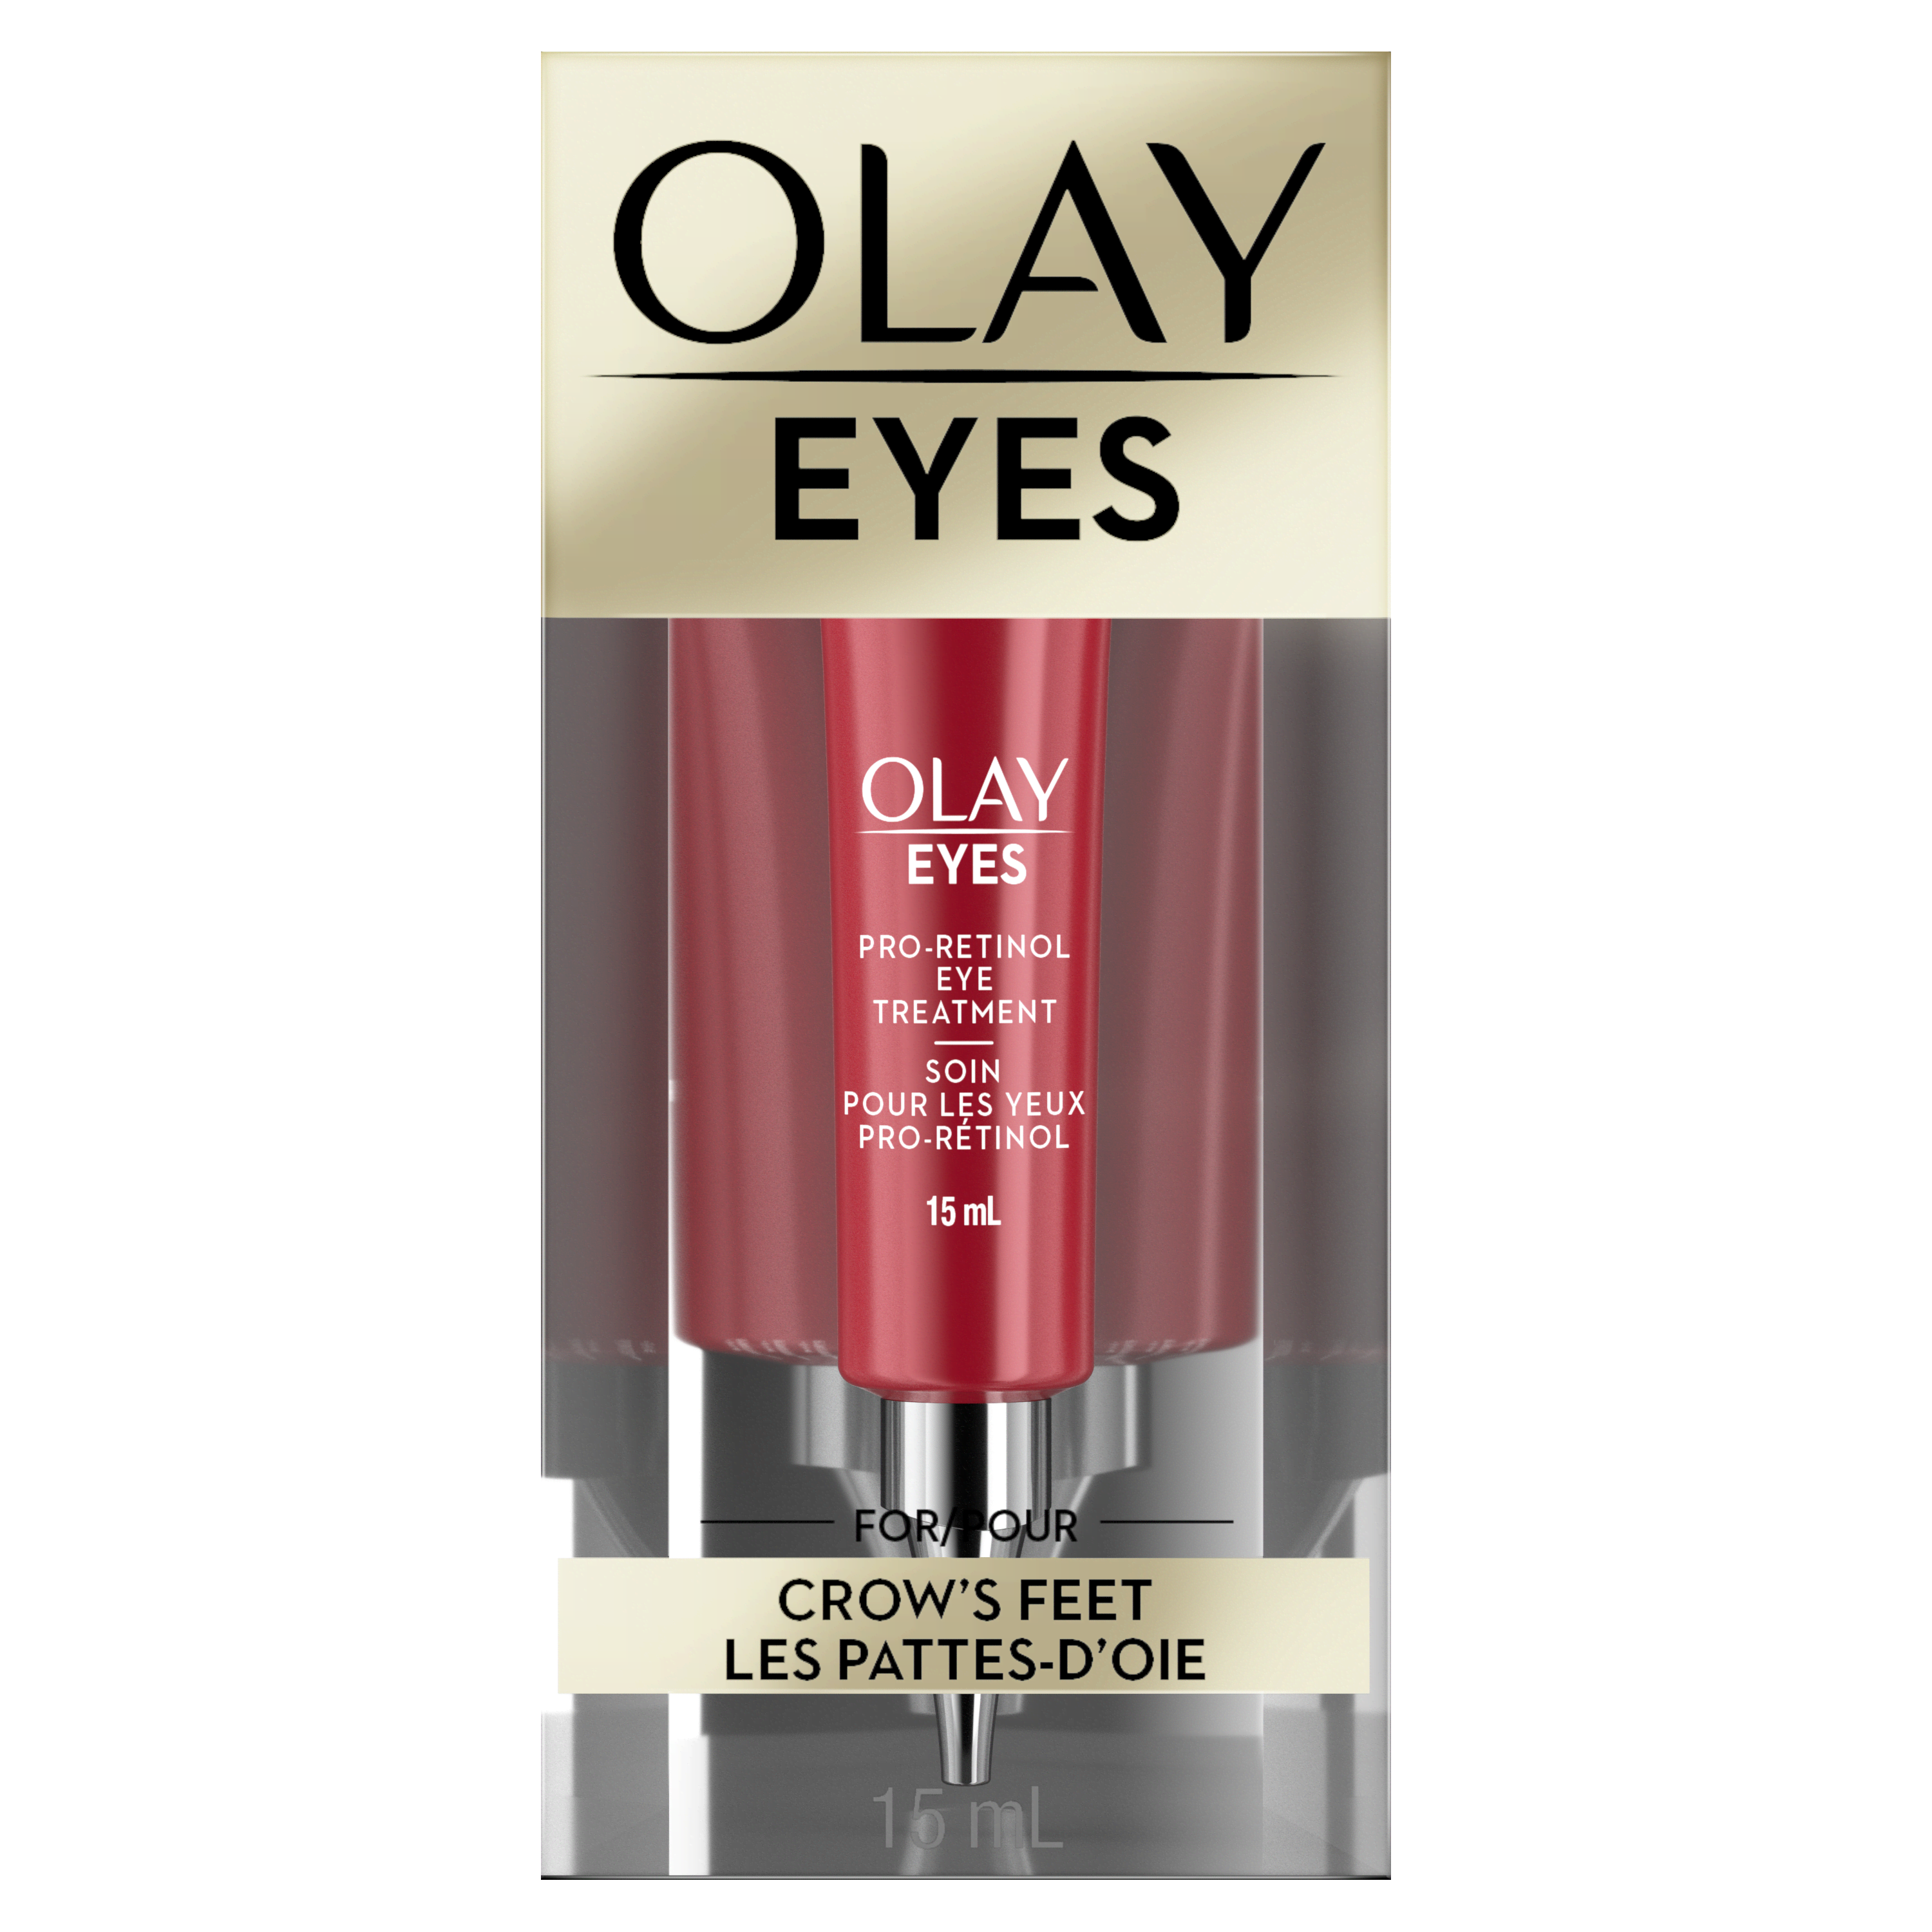 Olay Eyes Pro Retinol Eye Treatment for Wrinkles_1